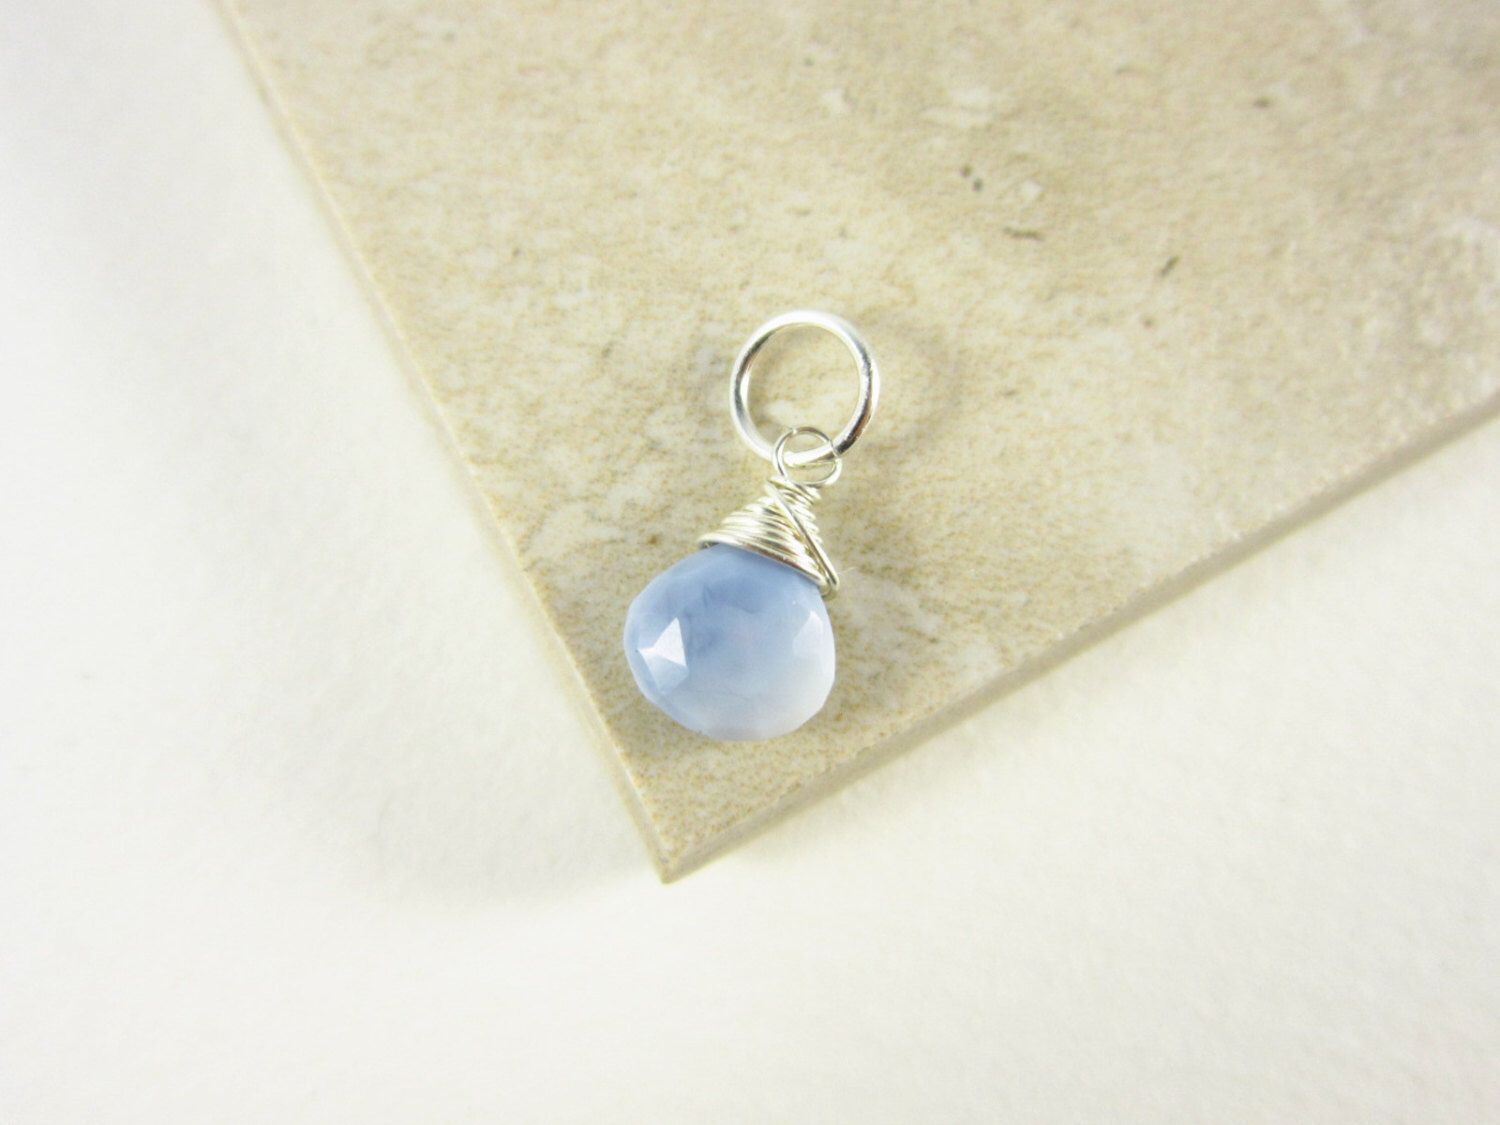 SmLt - Sterling Silver Light Blue Peruvian Opal Pendant - Something Blue Opal Charm - Blue Opal Jewelry Handmade - Natural Stone Jewelry by JustDangles on Etsy https://www.etsy.com/listing/280737388/smlt-sterling-silver-light-blue-peruvian